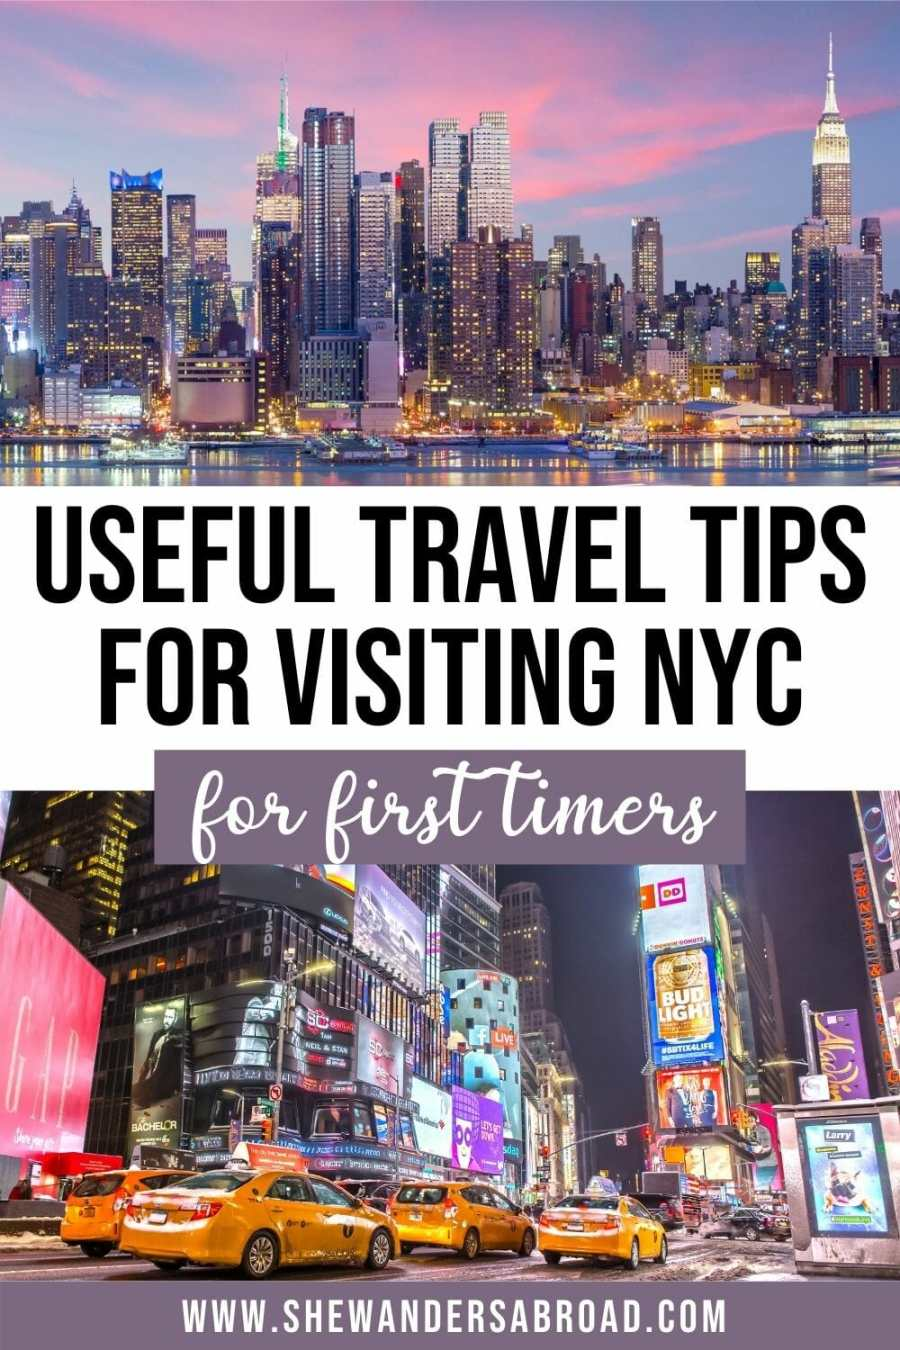 Best Travel Tips for NYC